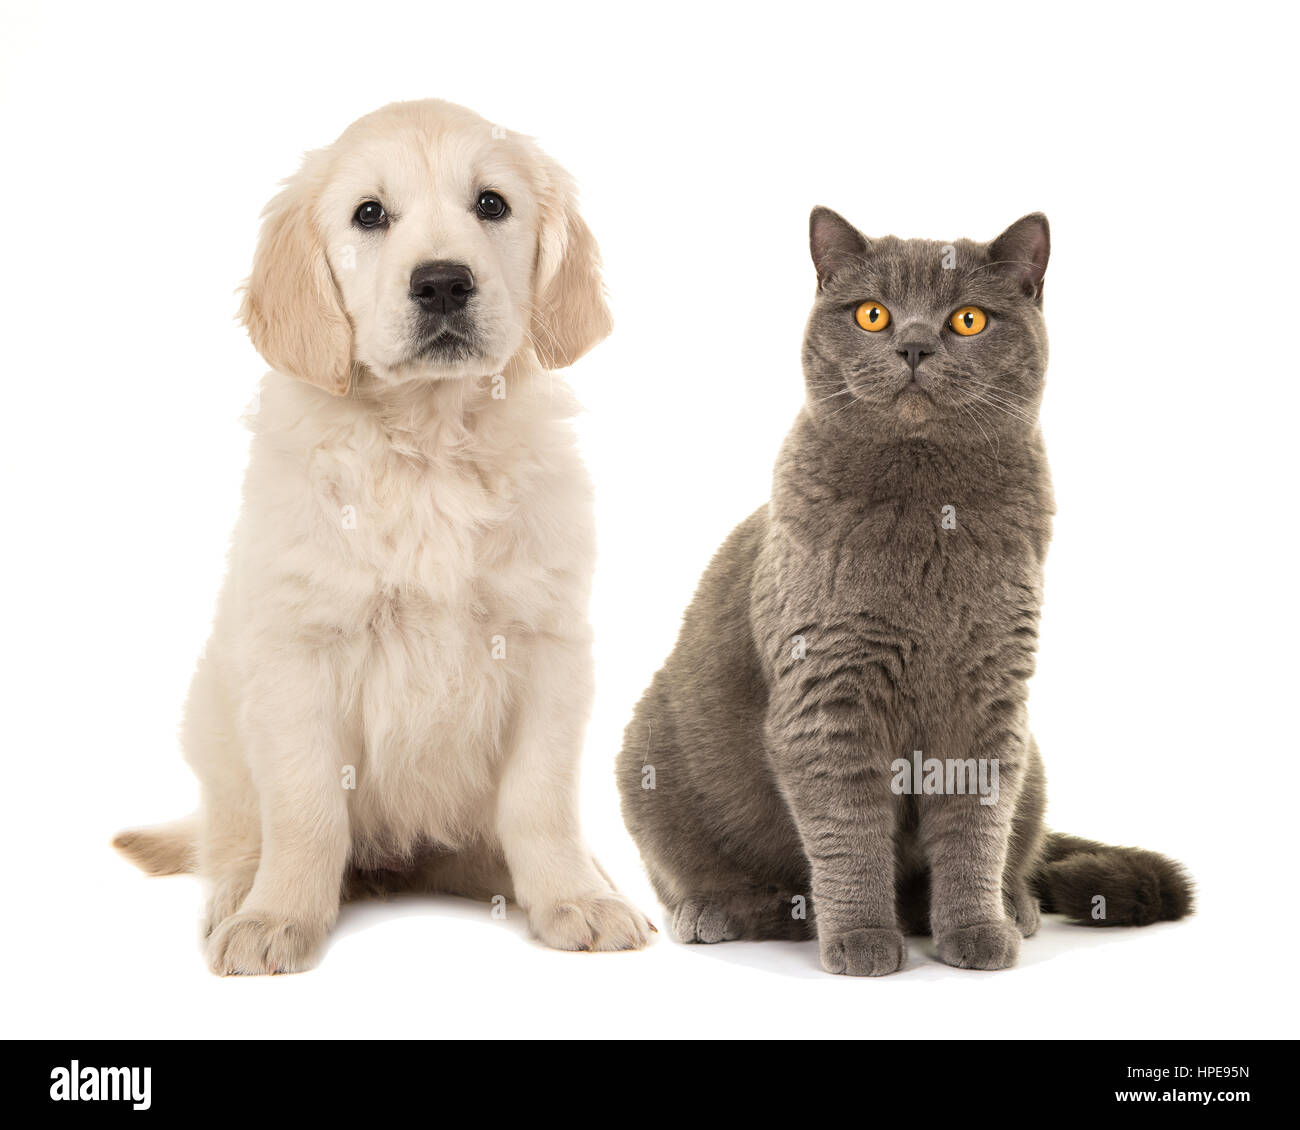 Blond Golden Retriever Puppy Dog And Grey British Short Hair Cat Stock Photo Alamy